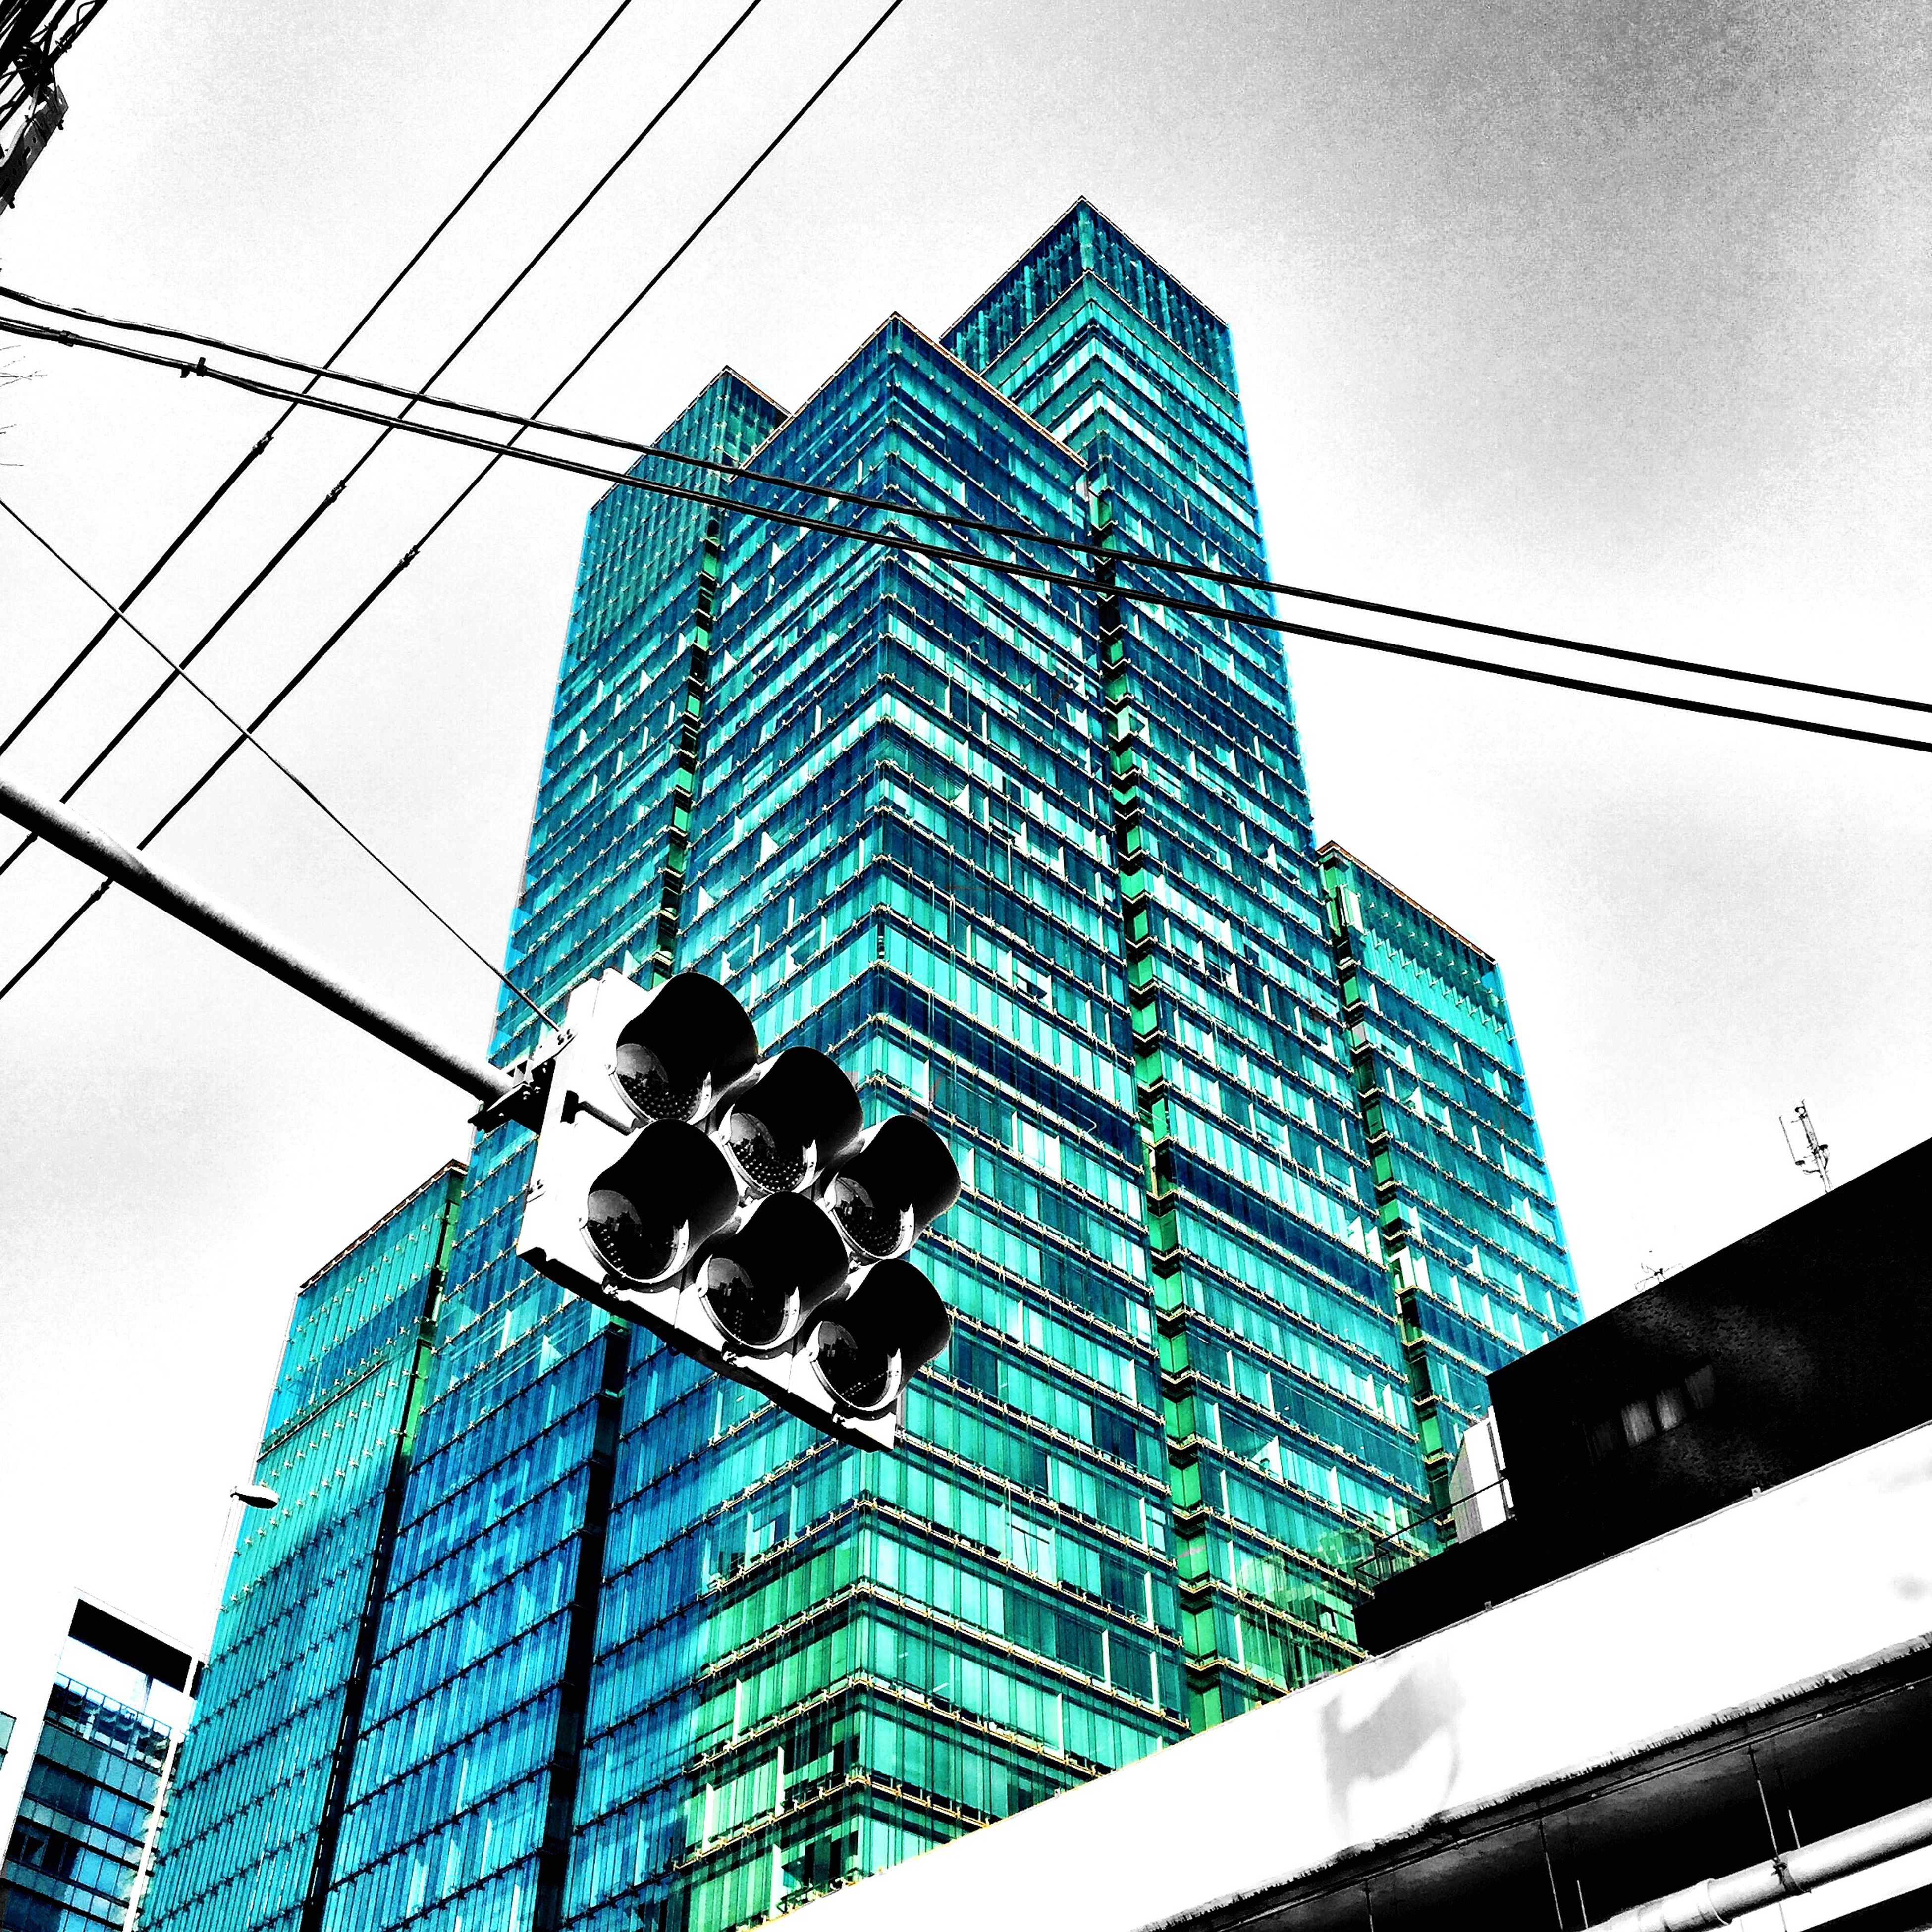 building exterior, architecture, low angle view, built structure, office building, modern, city, skyscraper, tall - high, tower, building, clear sky, sky, blue, reflection, glass - material, day, outdoors, no people, city life